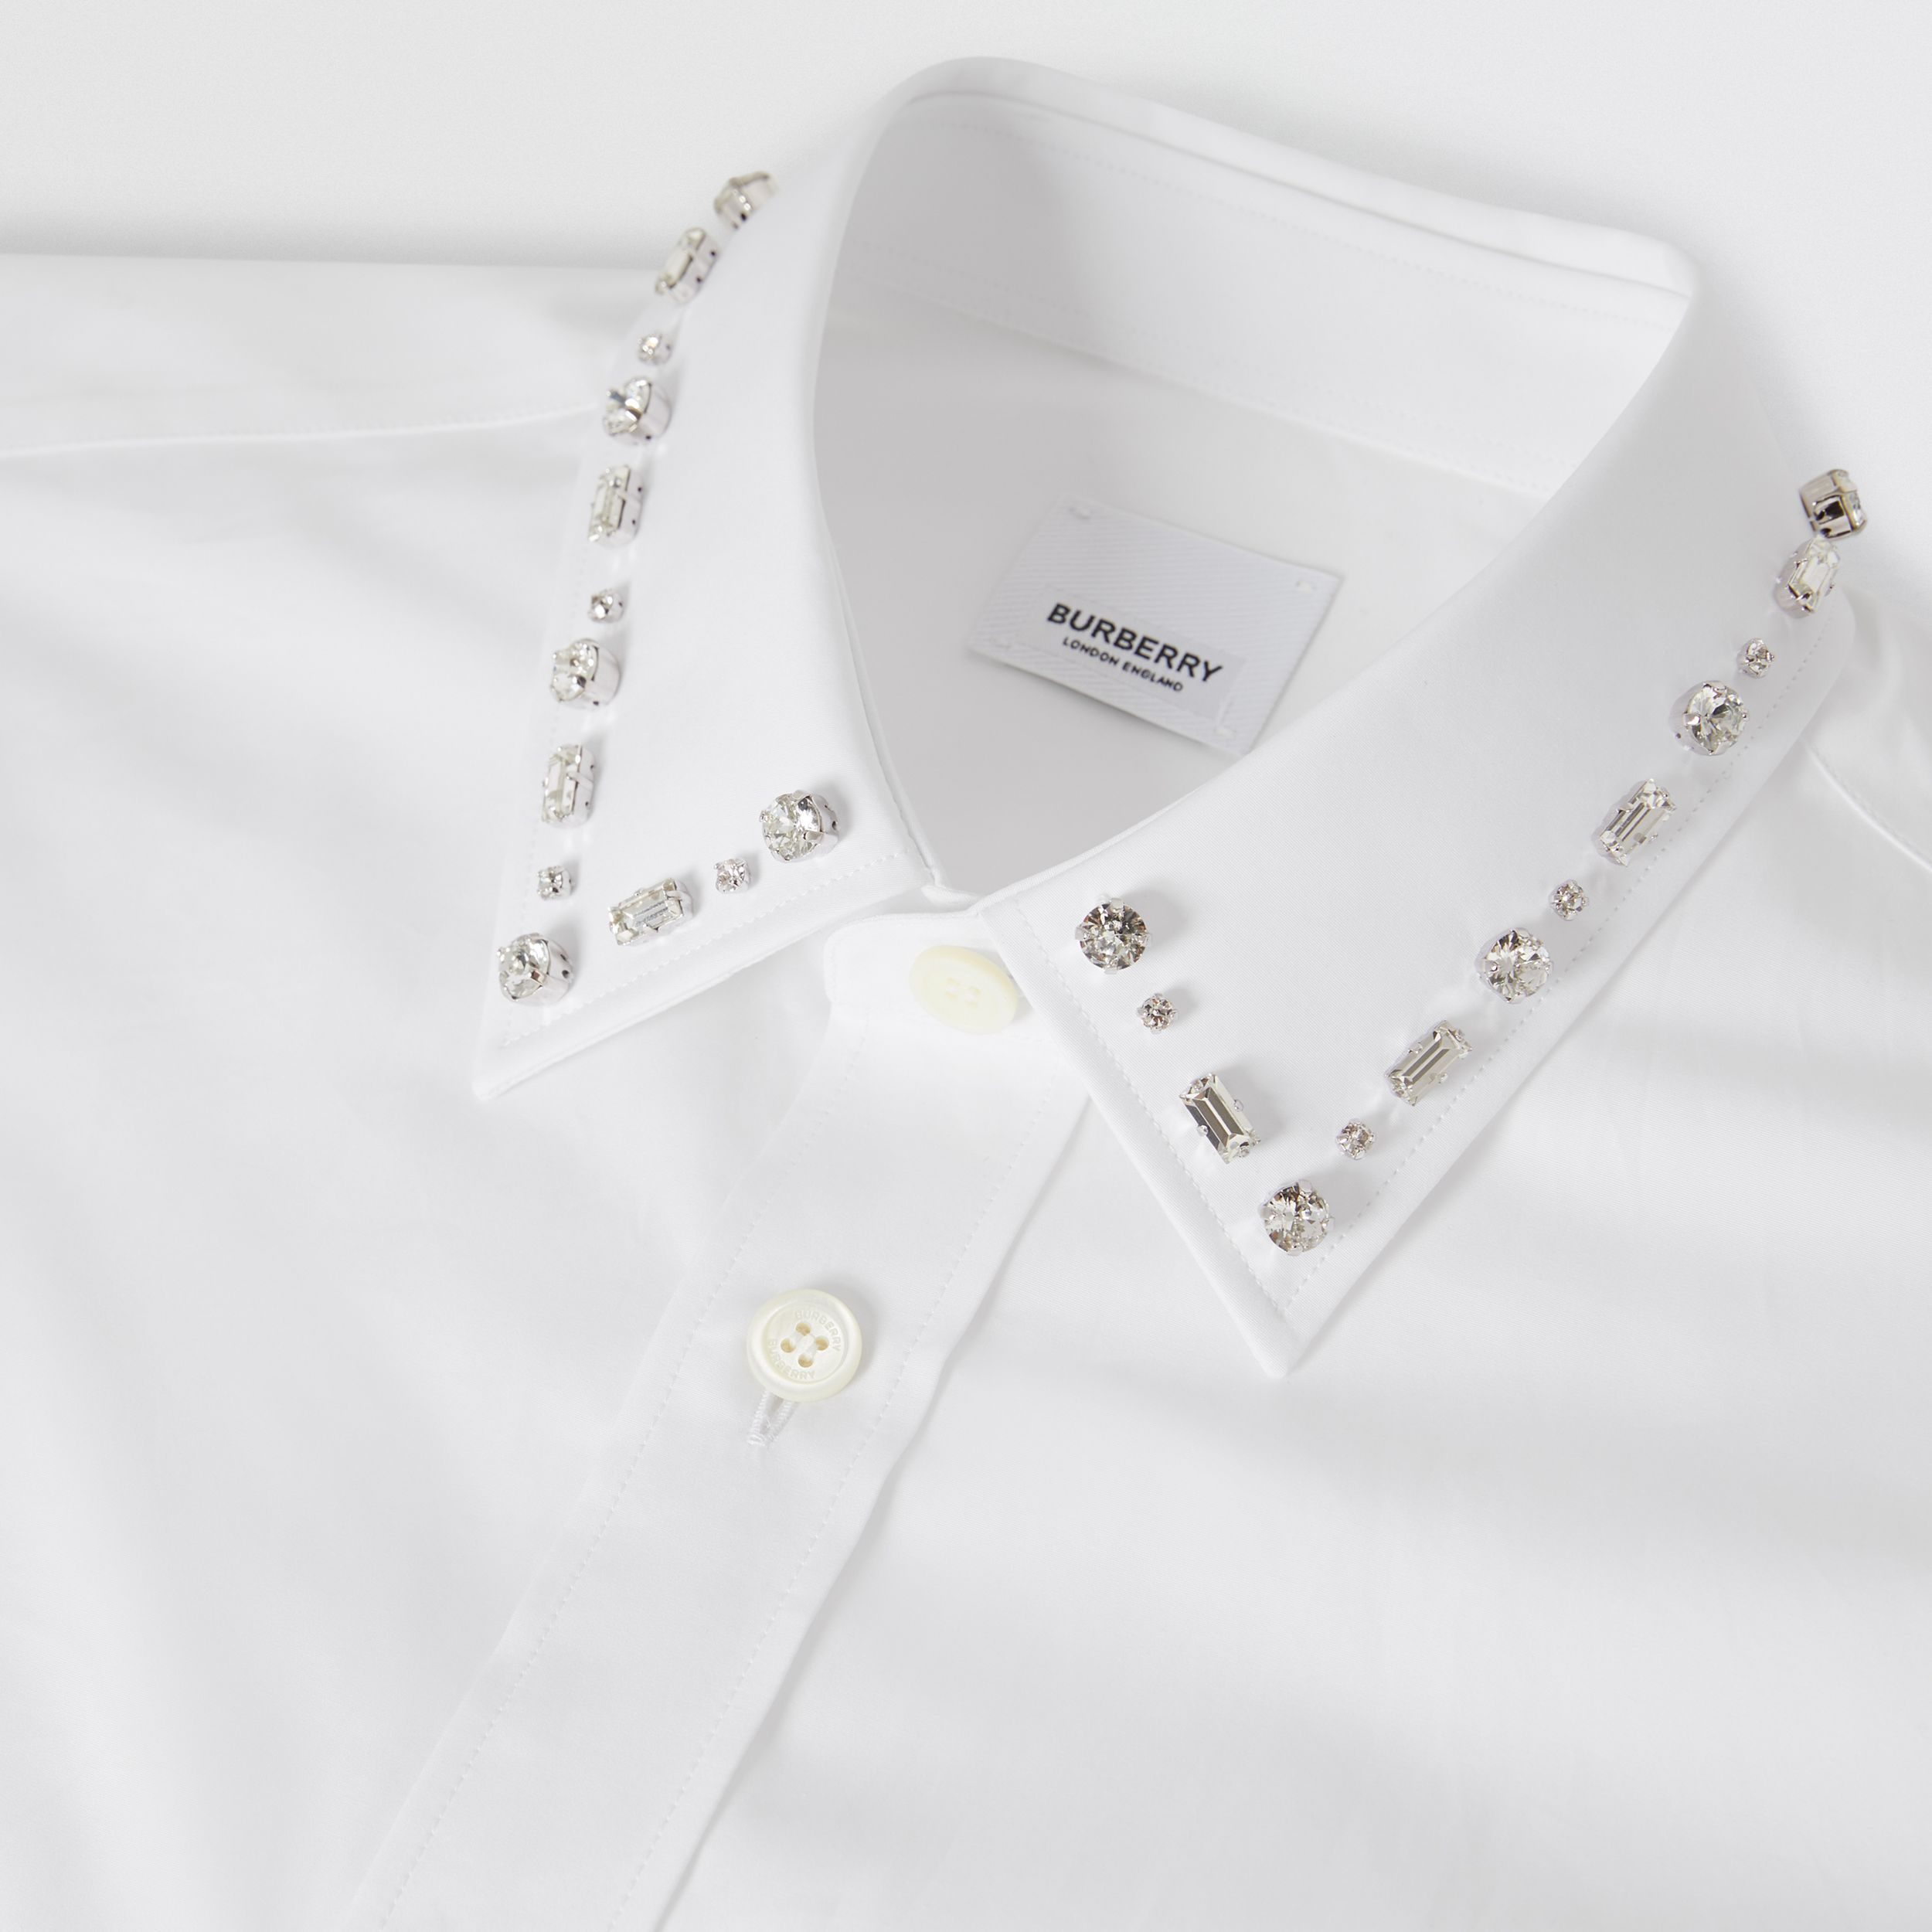 Classic Fit Embellished Cotton Poplin Dress Shirt in White - Men | Burberry Hong Kong S.A.R. - 2